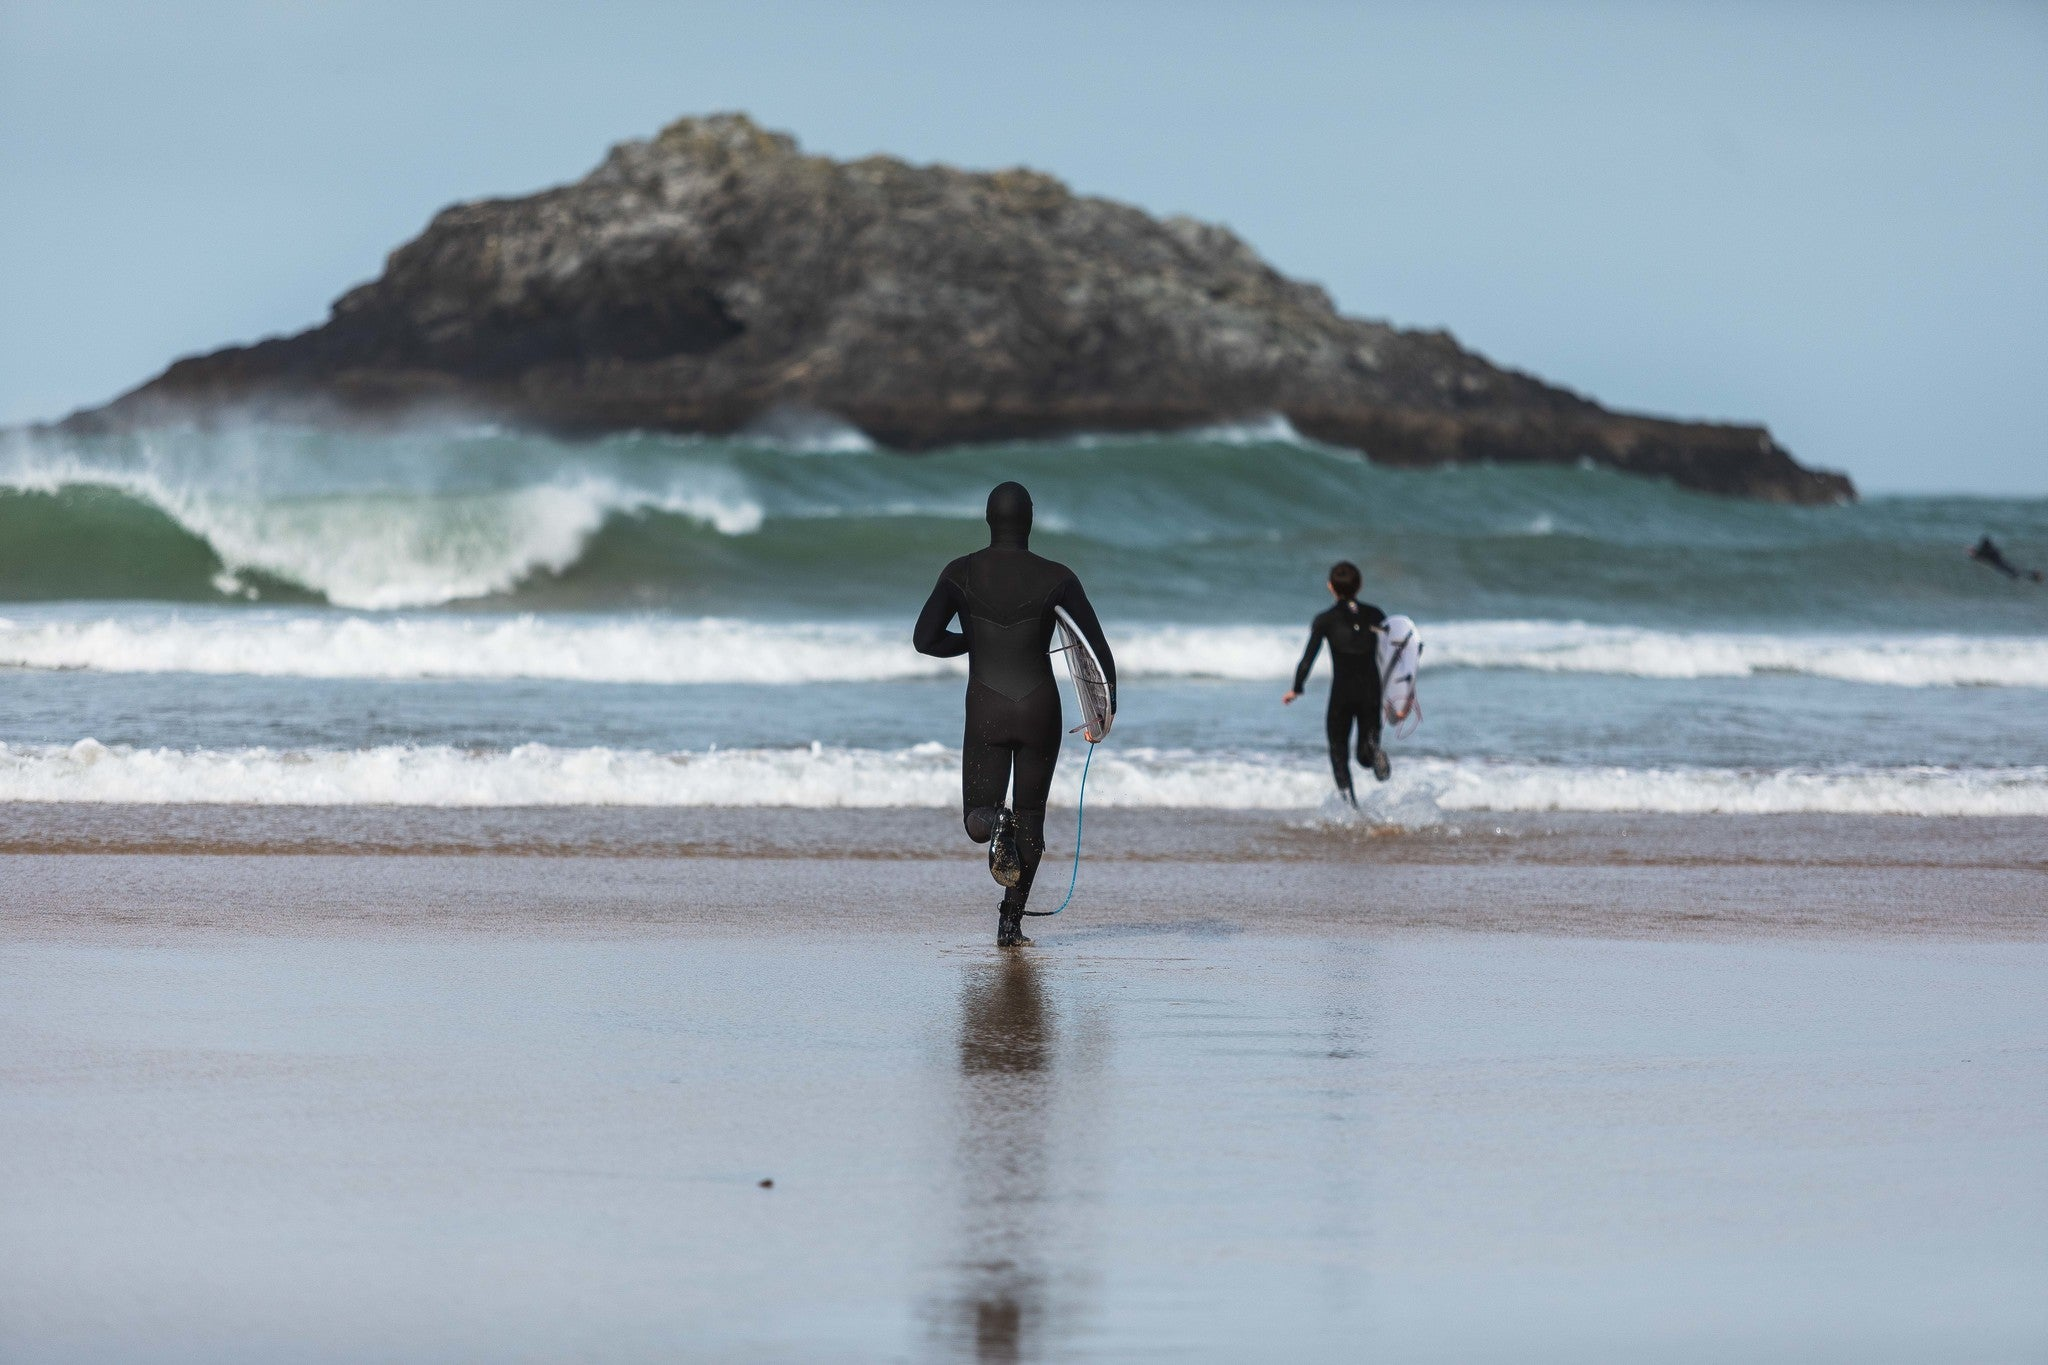 Lukas and Ben Skinner running into the sea wearing wetsuits and carrying surfboards